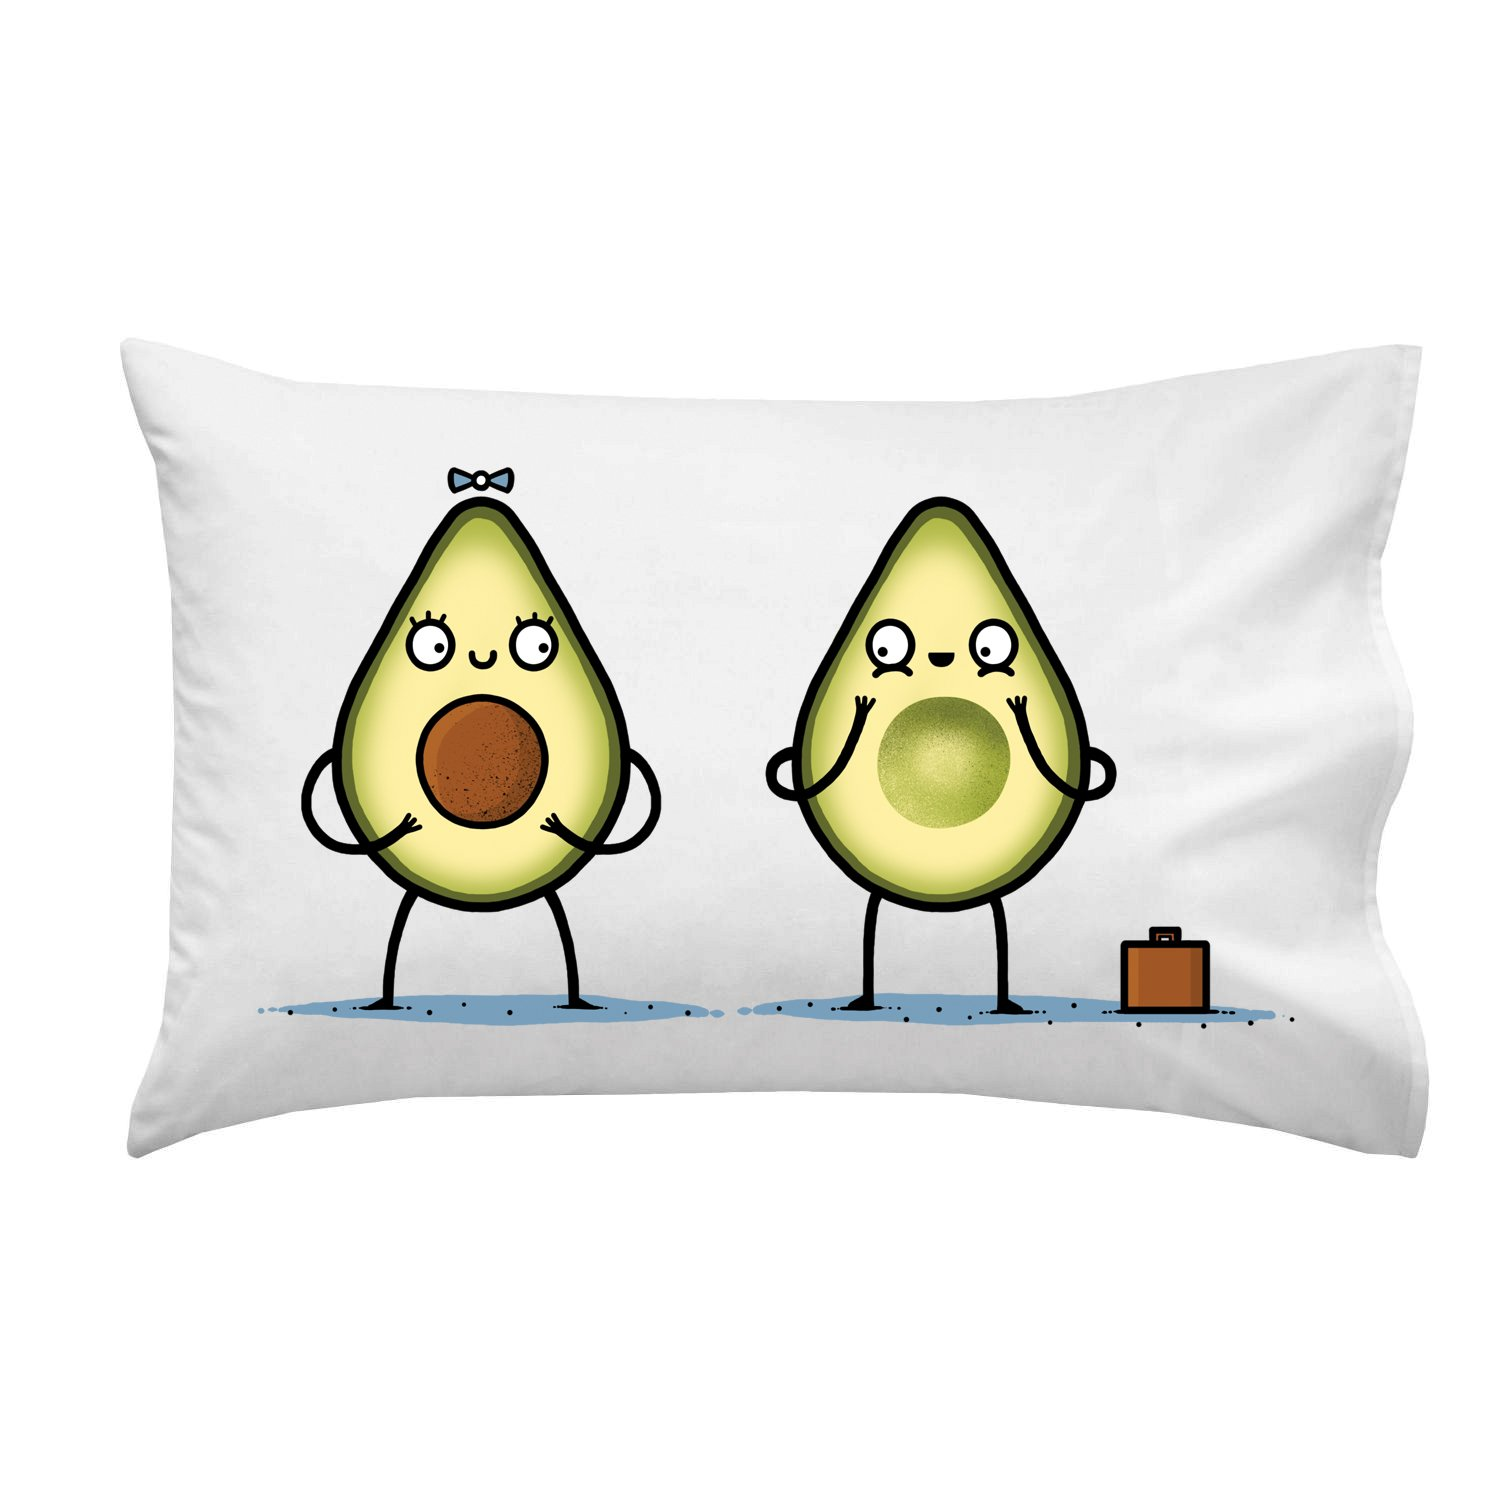 Hat Shark Avocado Baby Fruit & Seed Couple Humor - Pillow Case Single Pillowcase